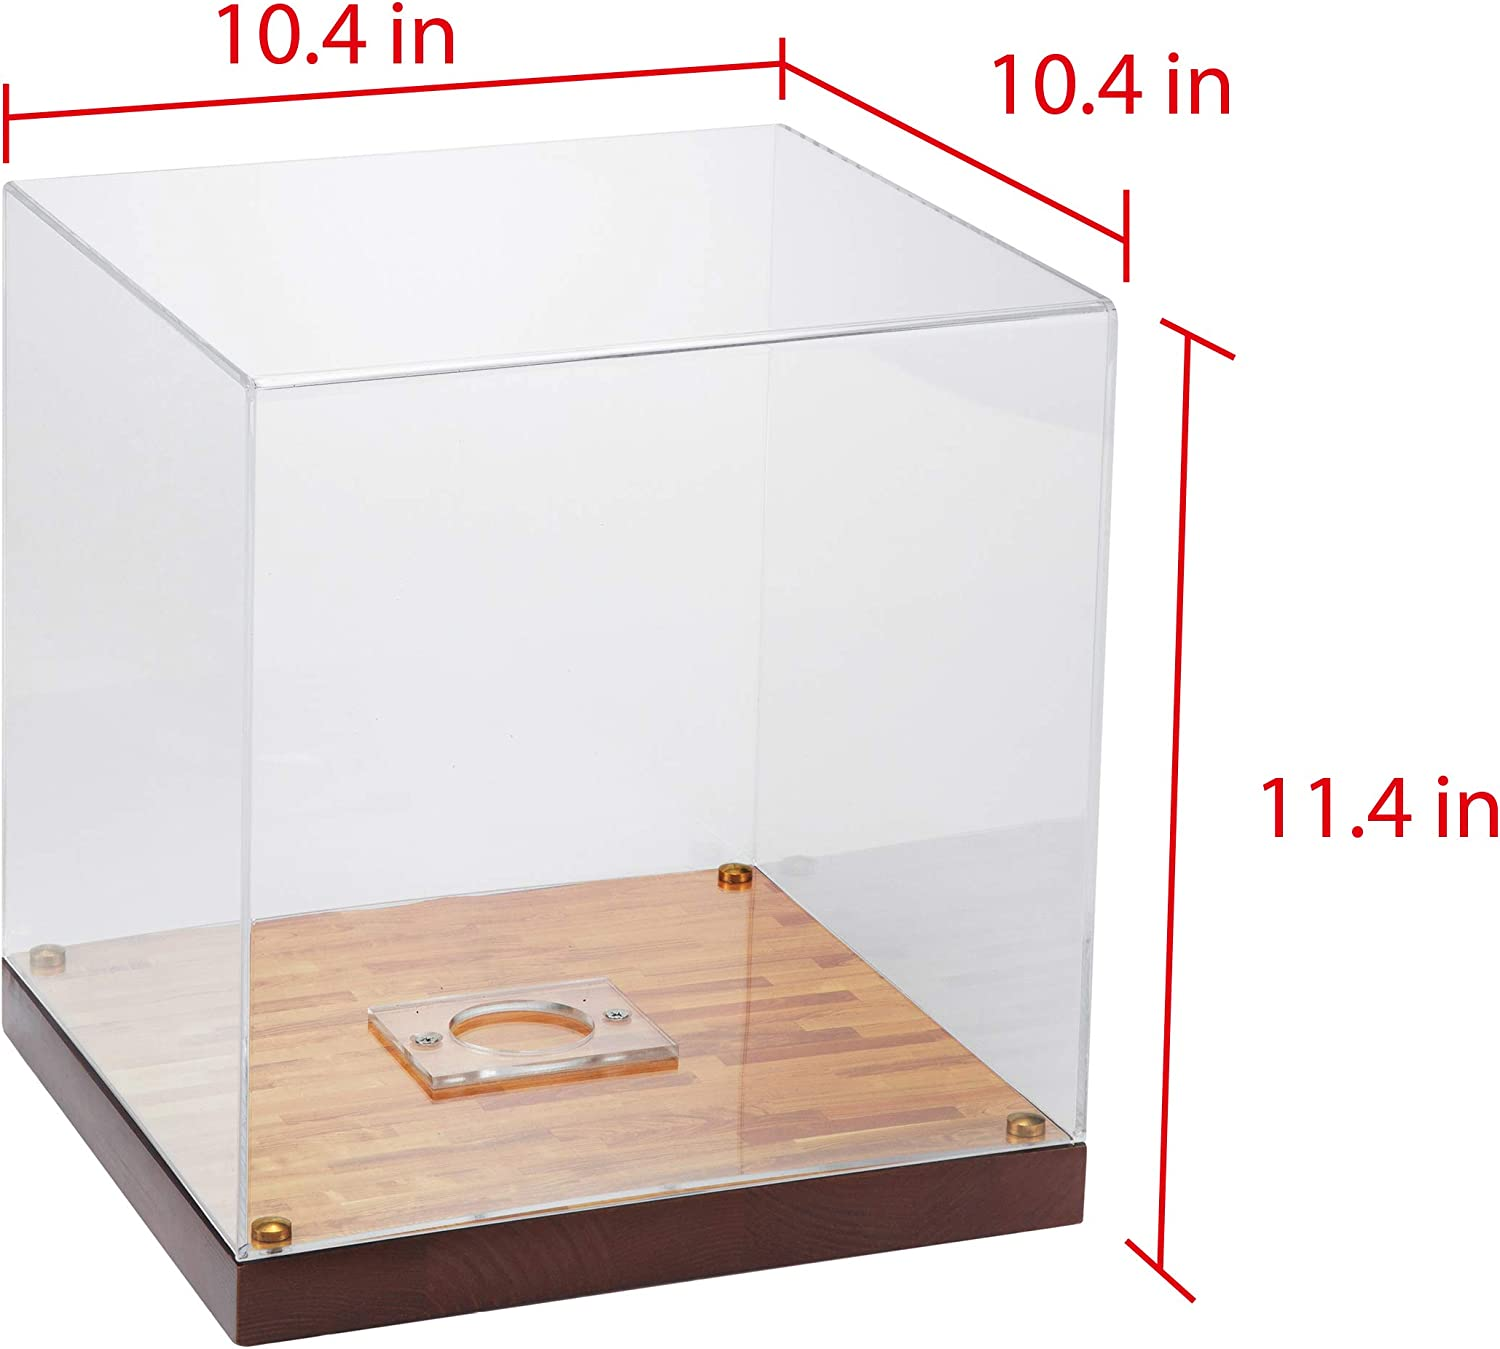 Jackcube Design MK342A Basketball Display Case